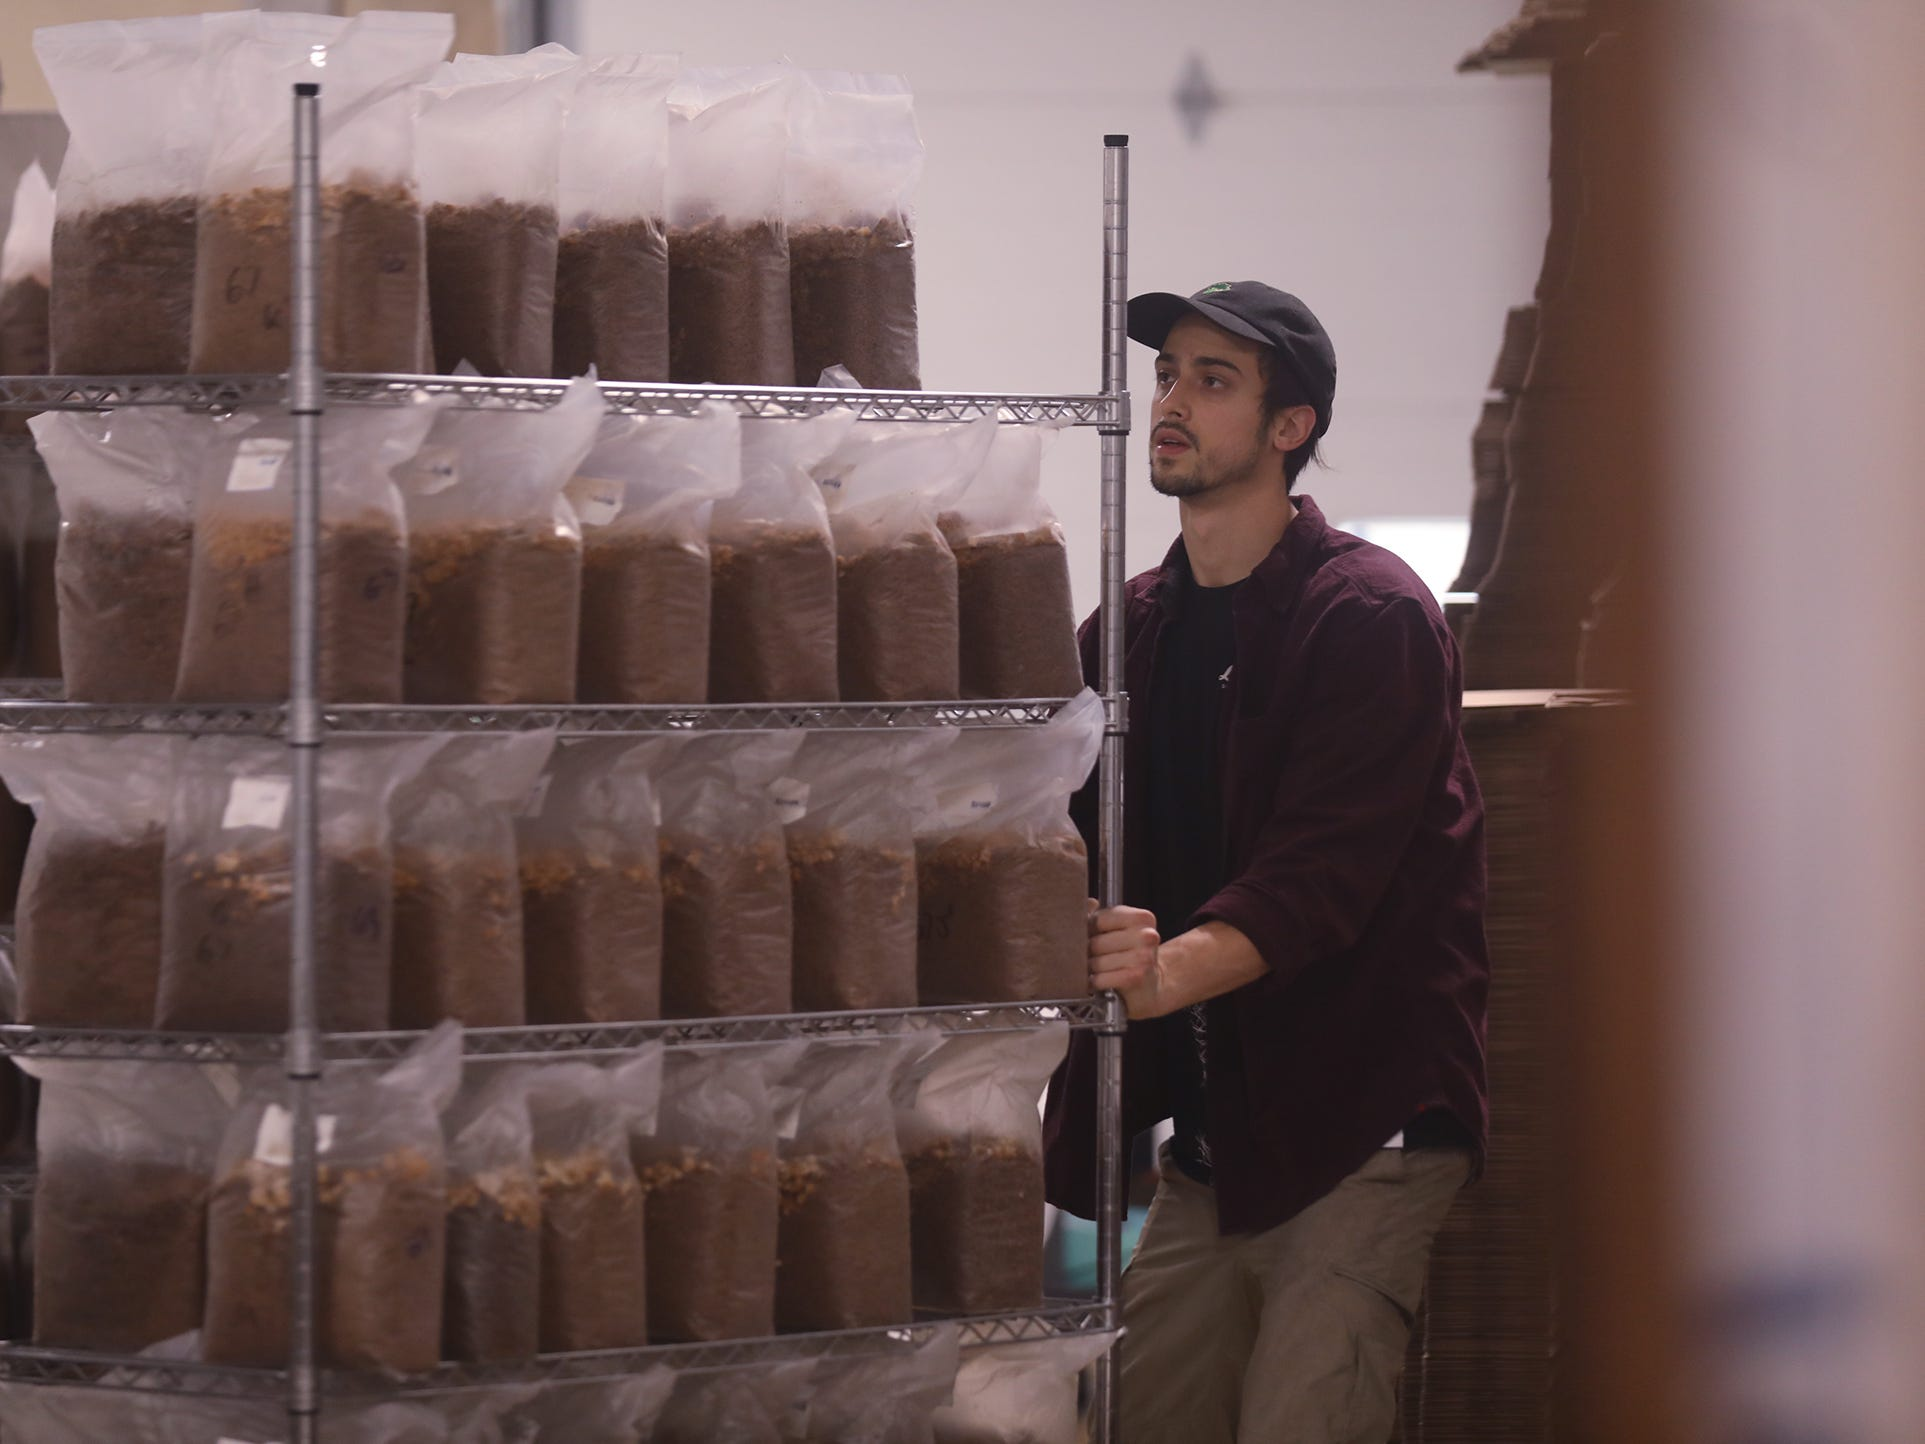 Nick Pesesky moves a rack of mushrooms to another part of the growing facility to mark the bags with the type of mushroom growing.